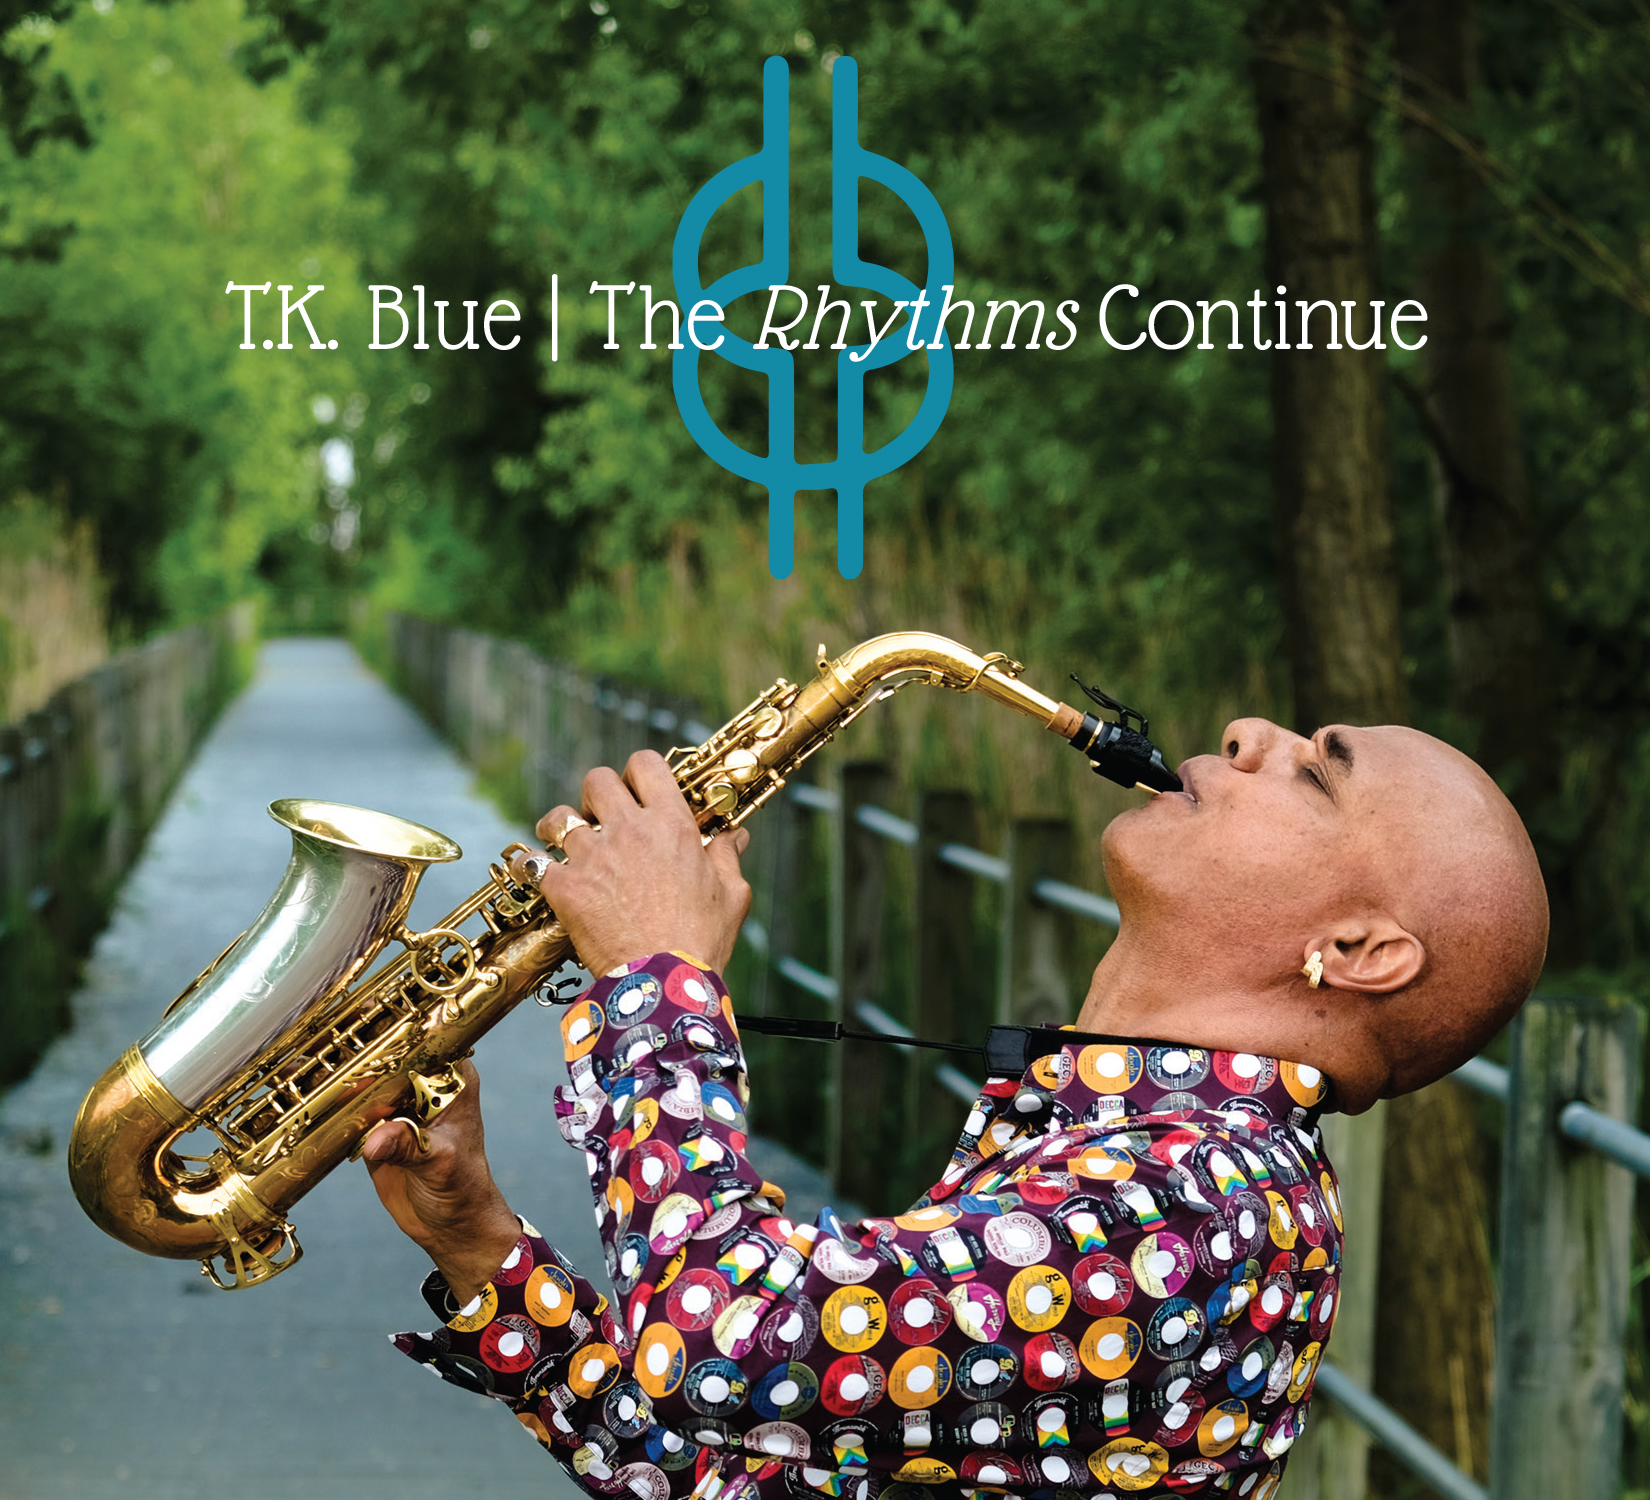 REVIEW: Jazz Hot (France) Reviews TK Blue 'The Rhythm Continues' & Louis Armstrong 'Live In Europe'